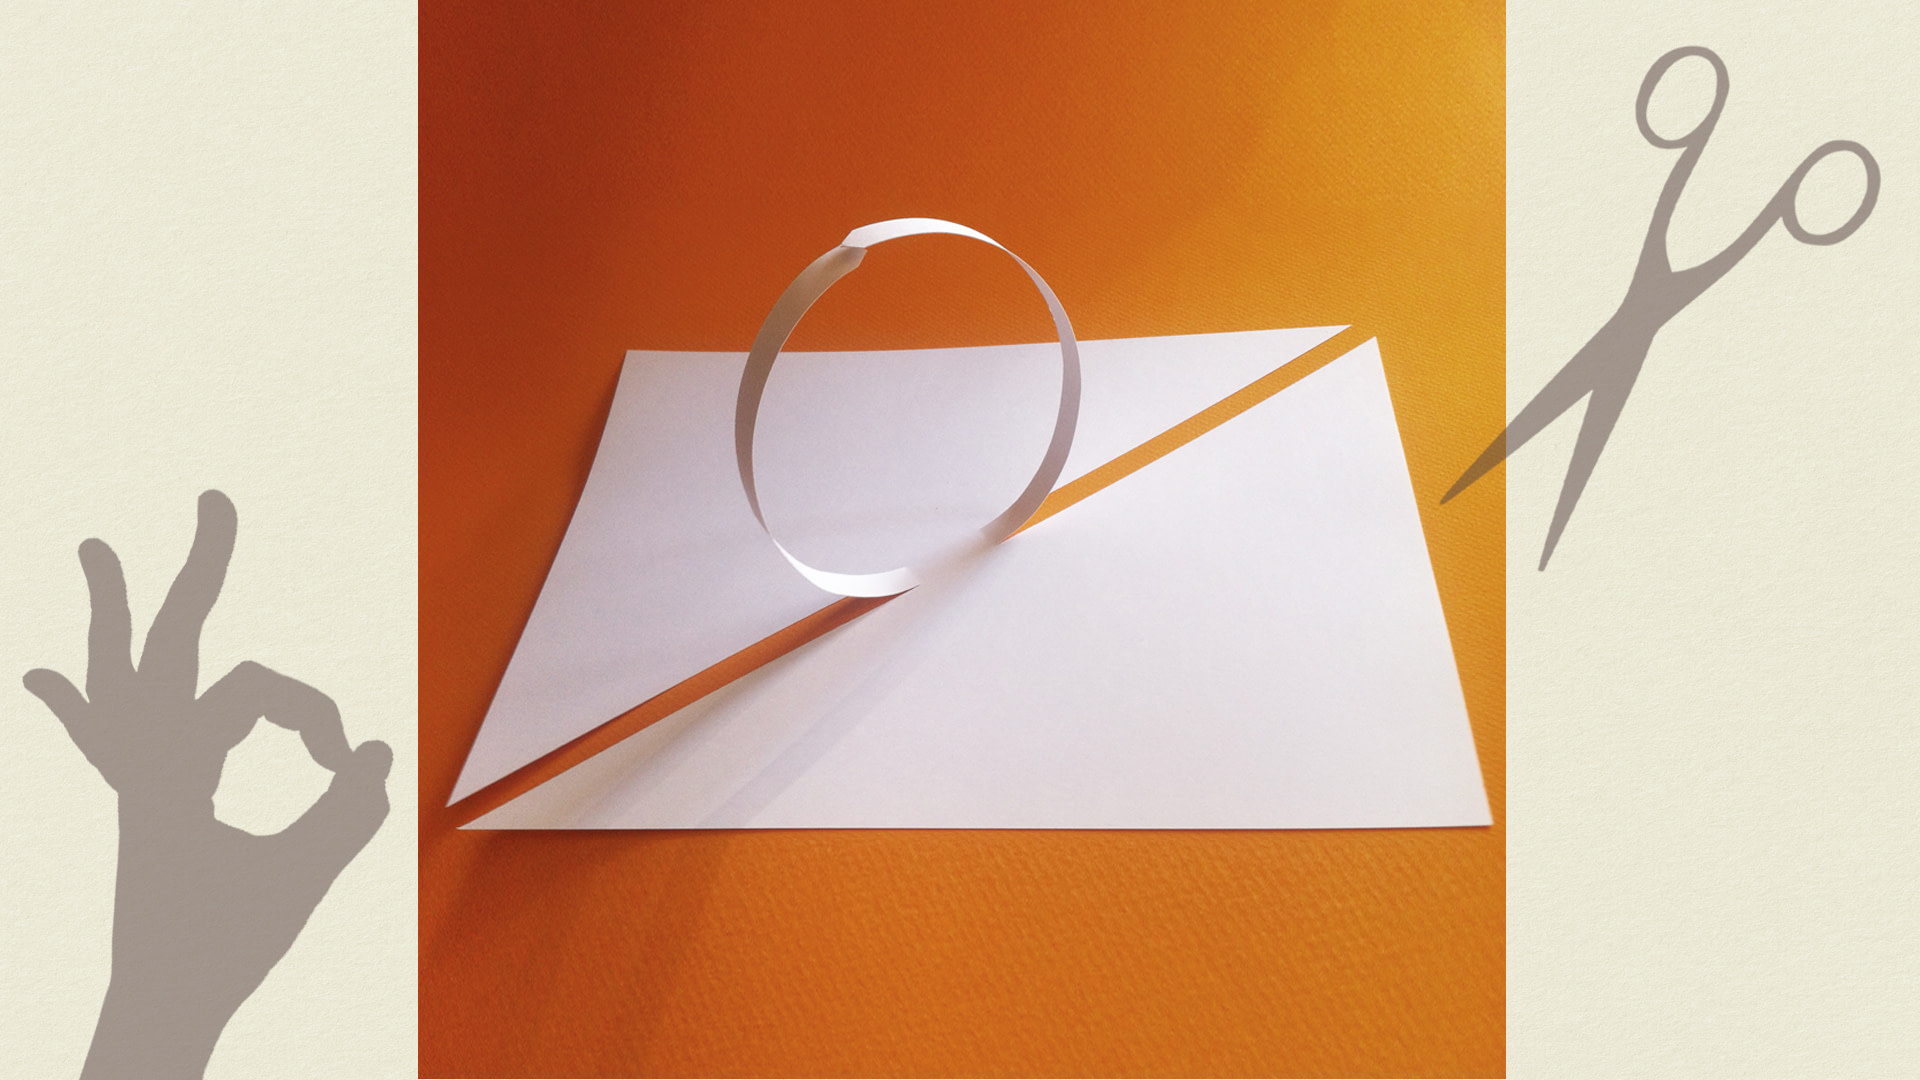 dialogue with a sheet of paper